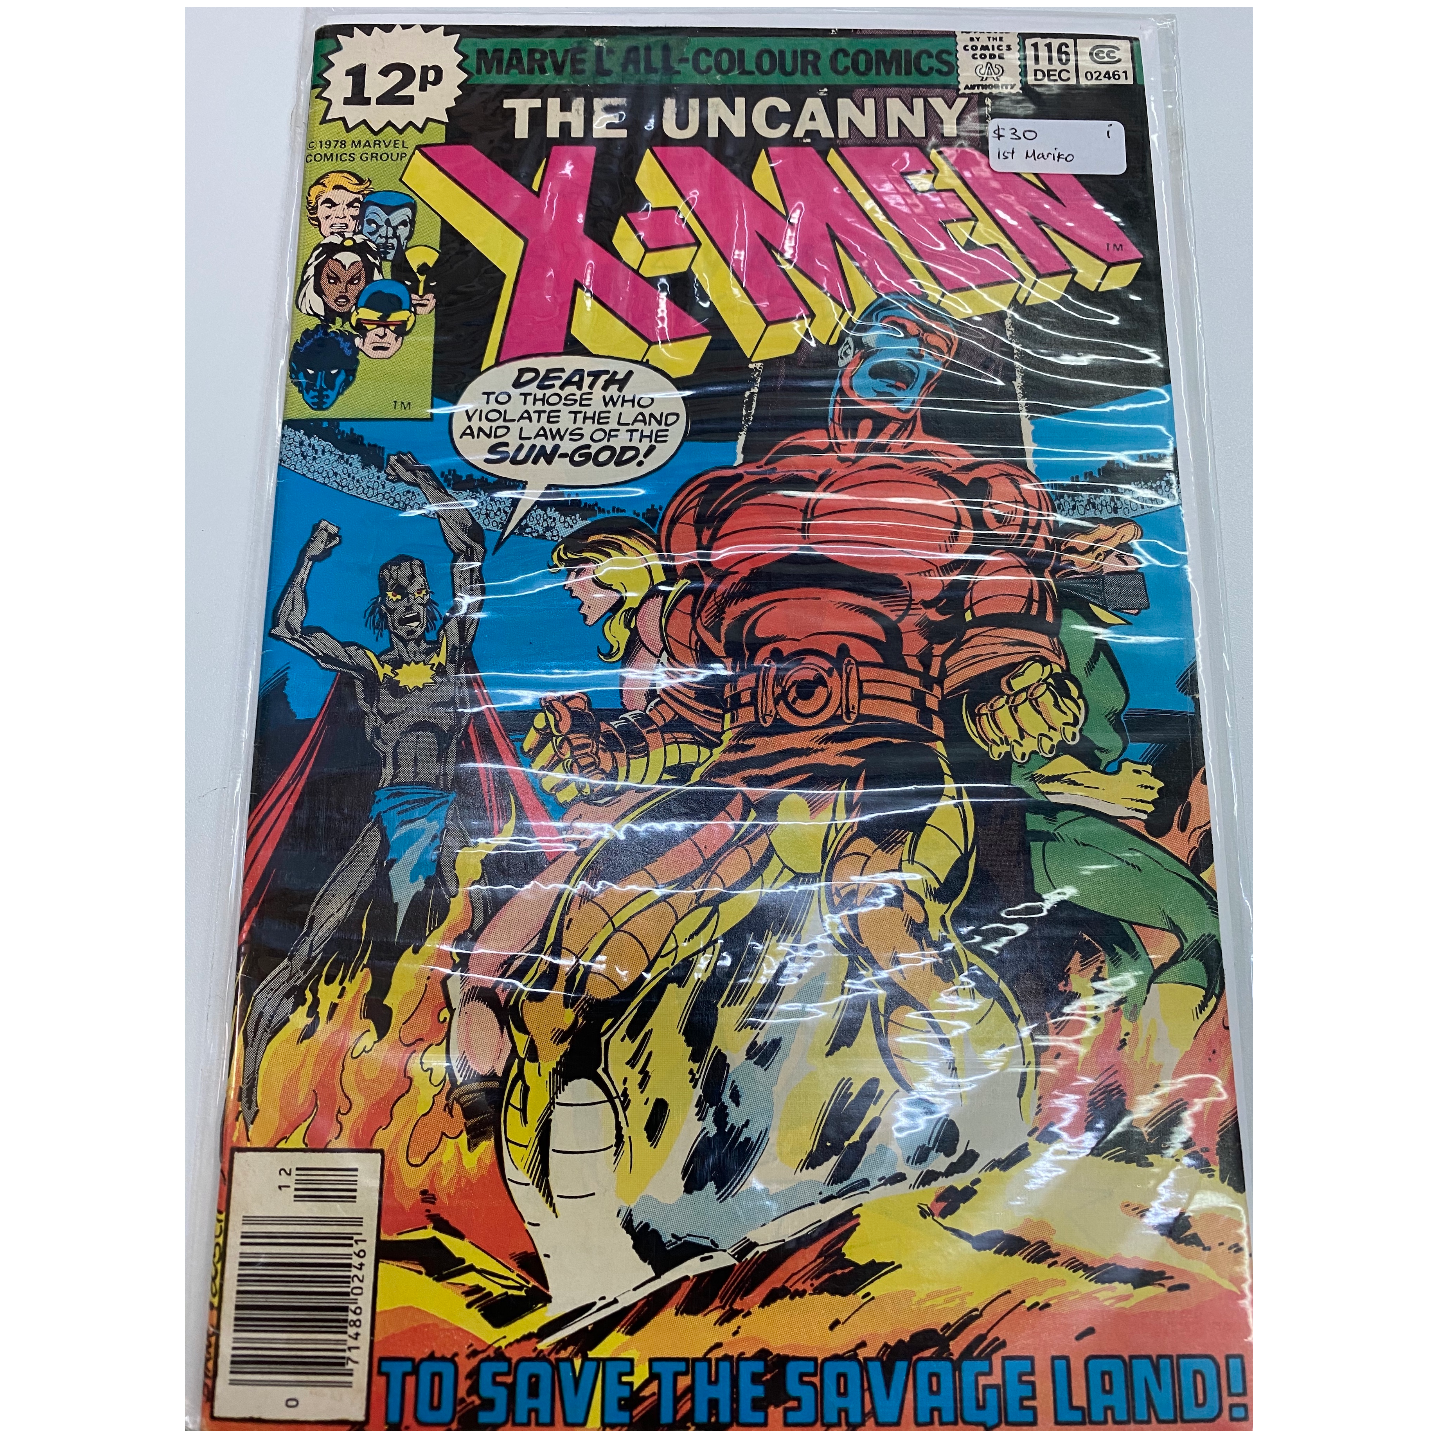 UNCANNY X-MEN #116 (KEY ISSUE)